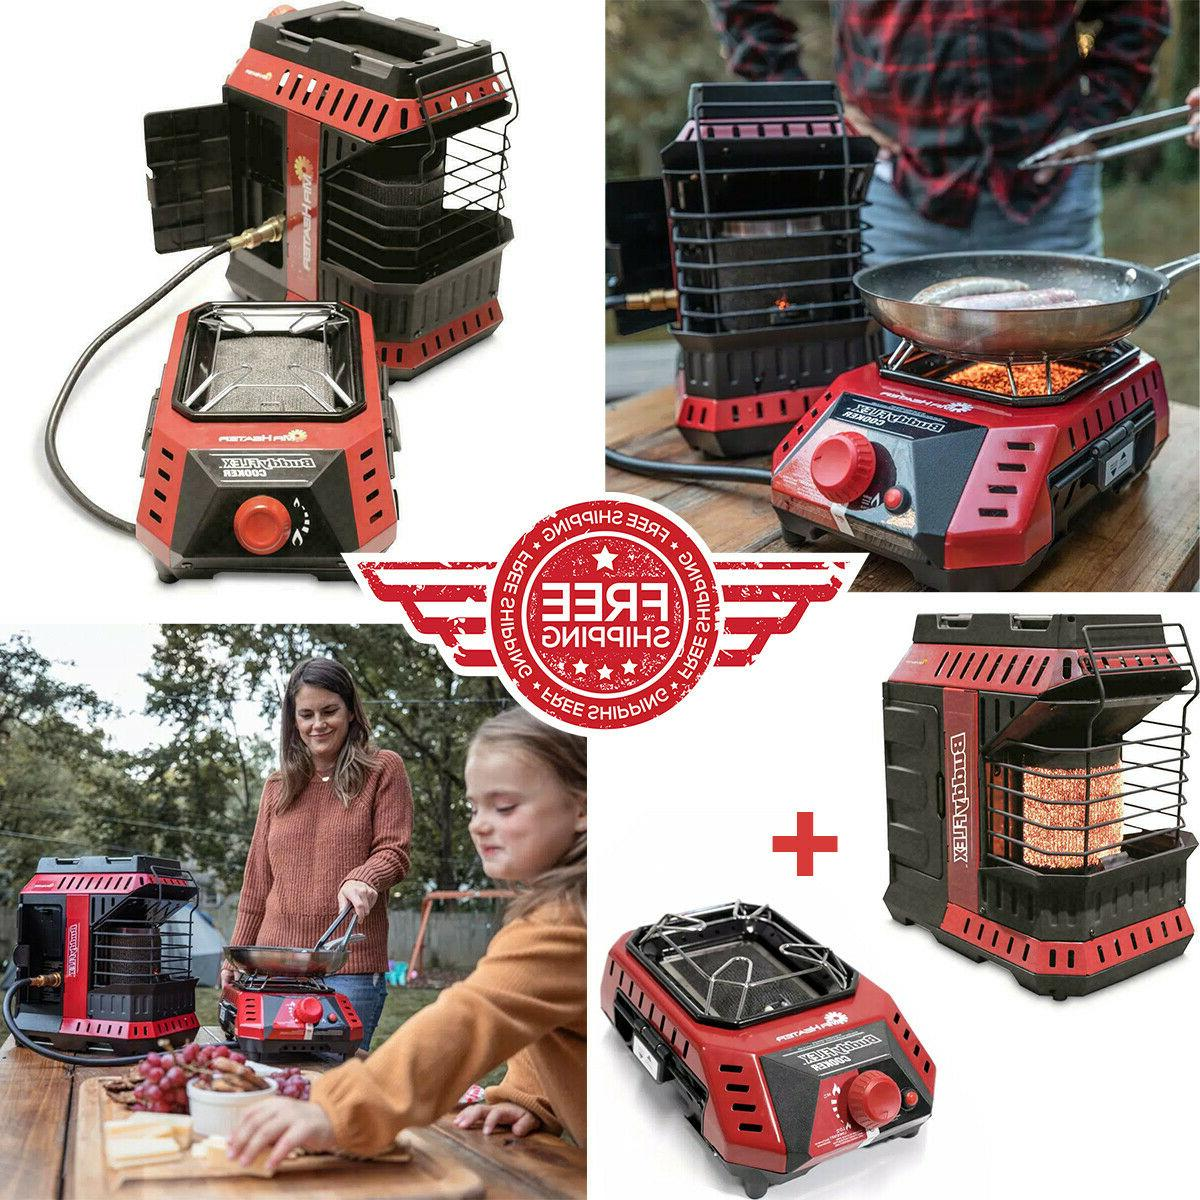 NEW Mr. Heater Buddy FLEX Portable Radiant Heater AND Cooker